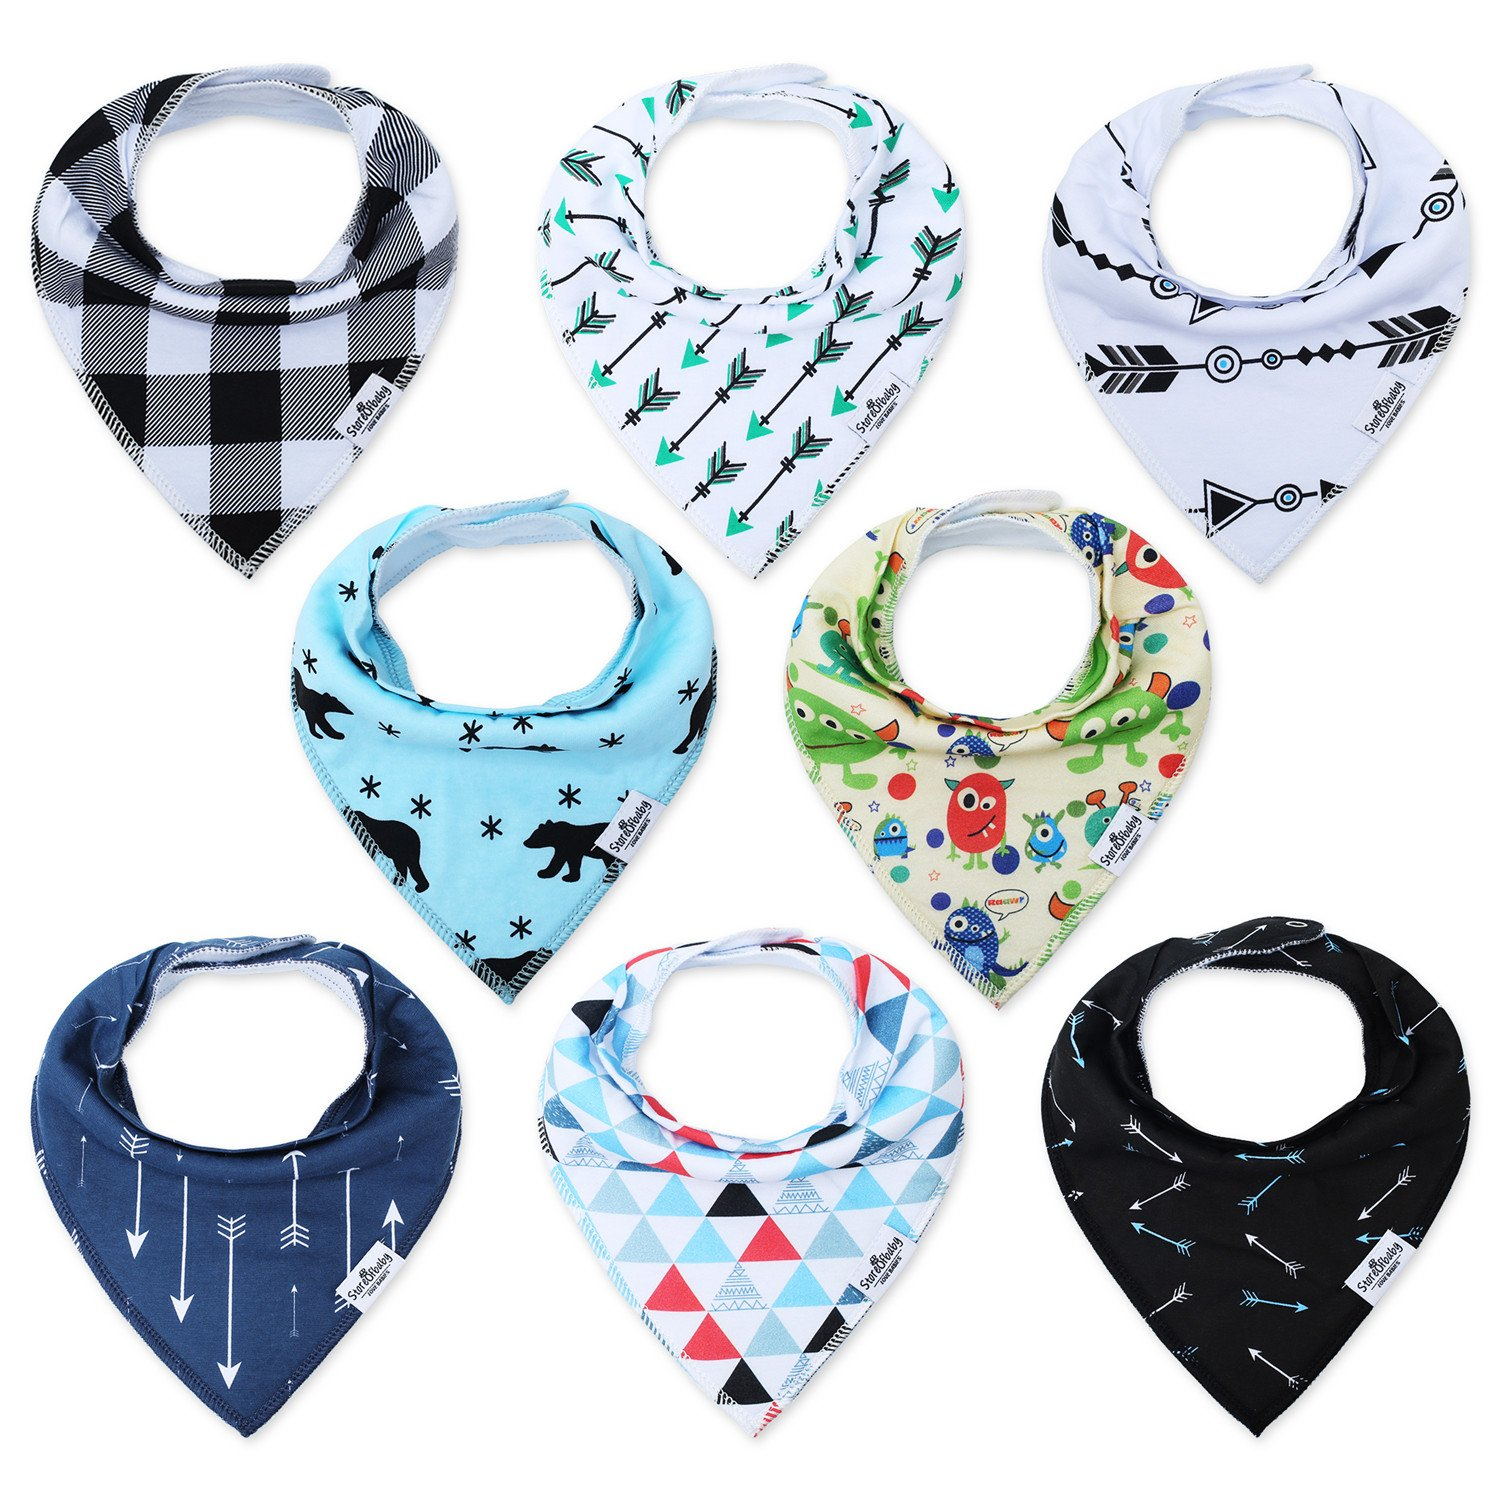 Storeofbaby Baby Bandana Bibs for Boys Drooling Feeding Super Absorbent 8 Pack Babybibs-8pcs-ca